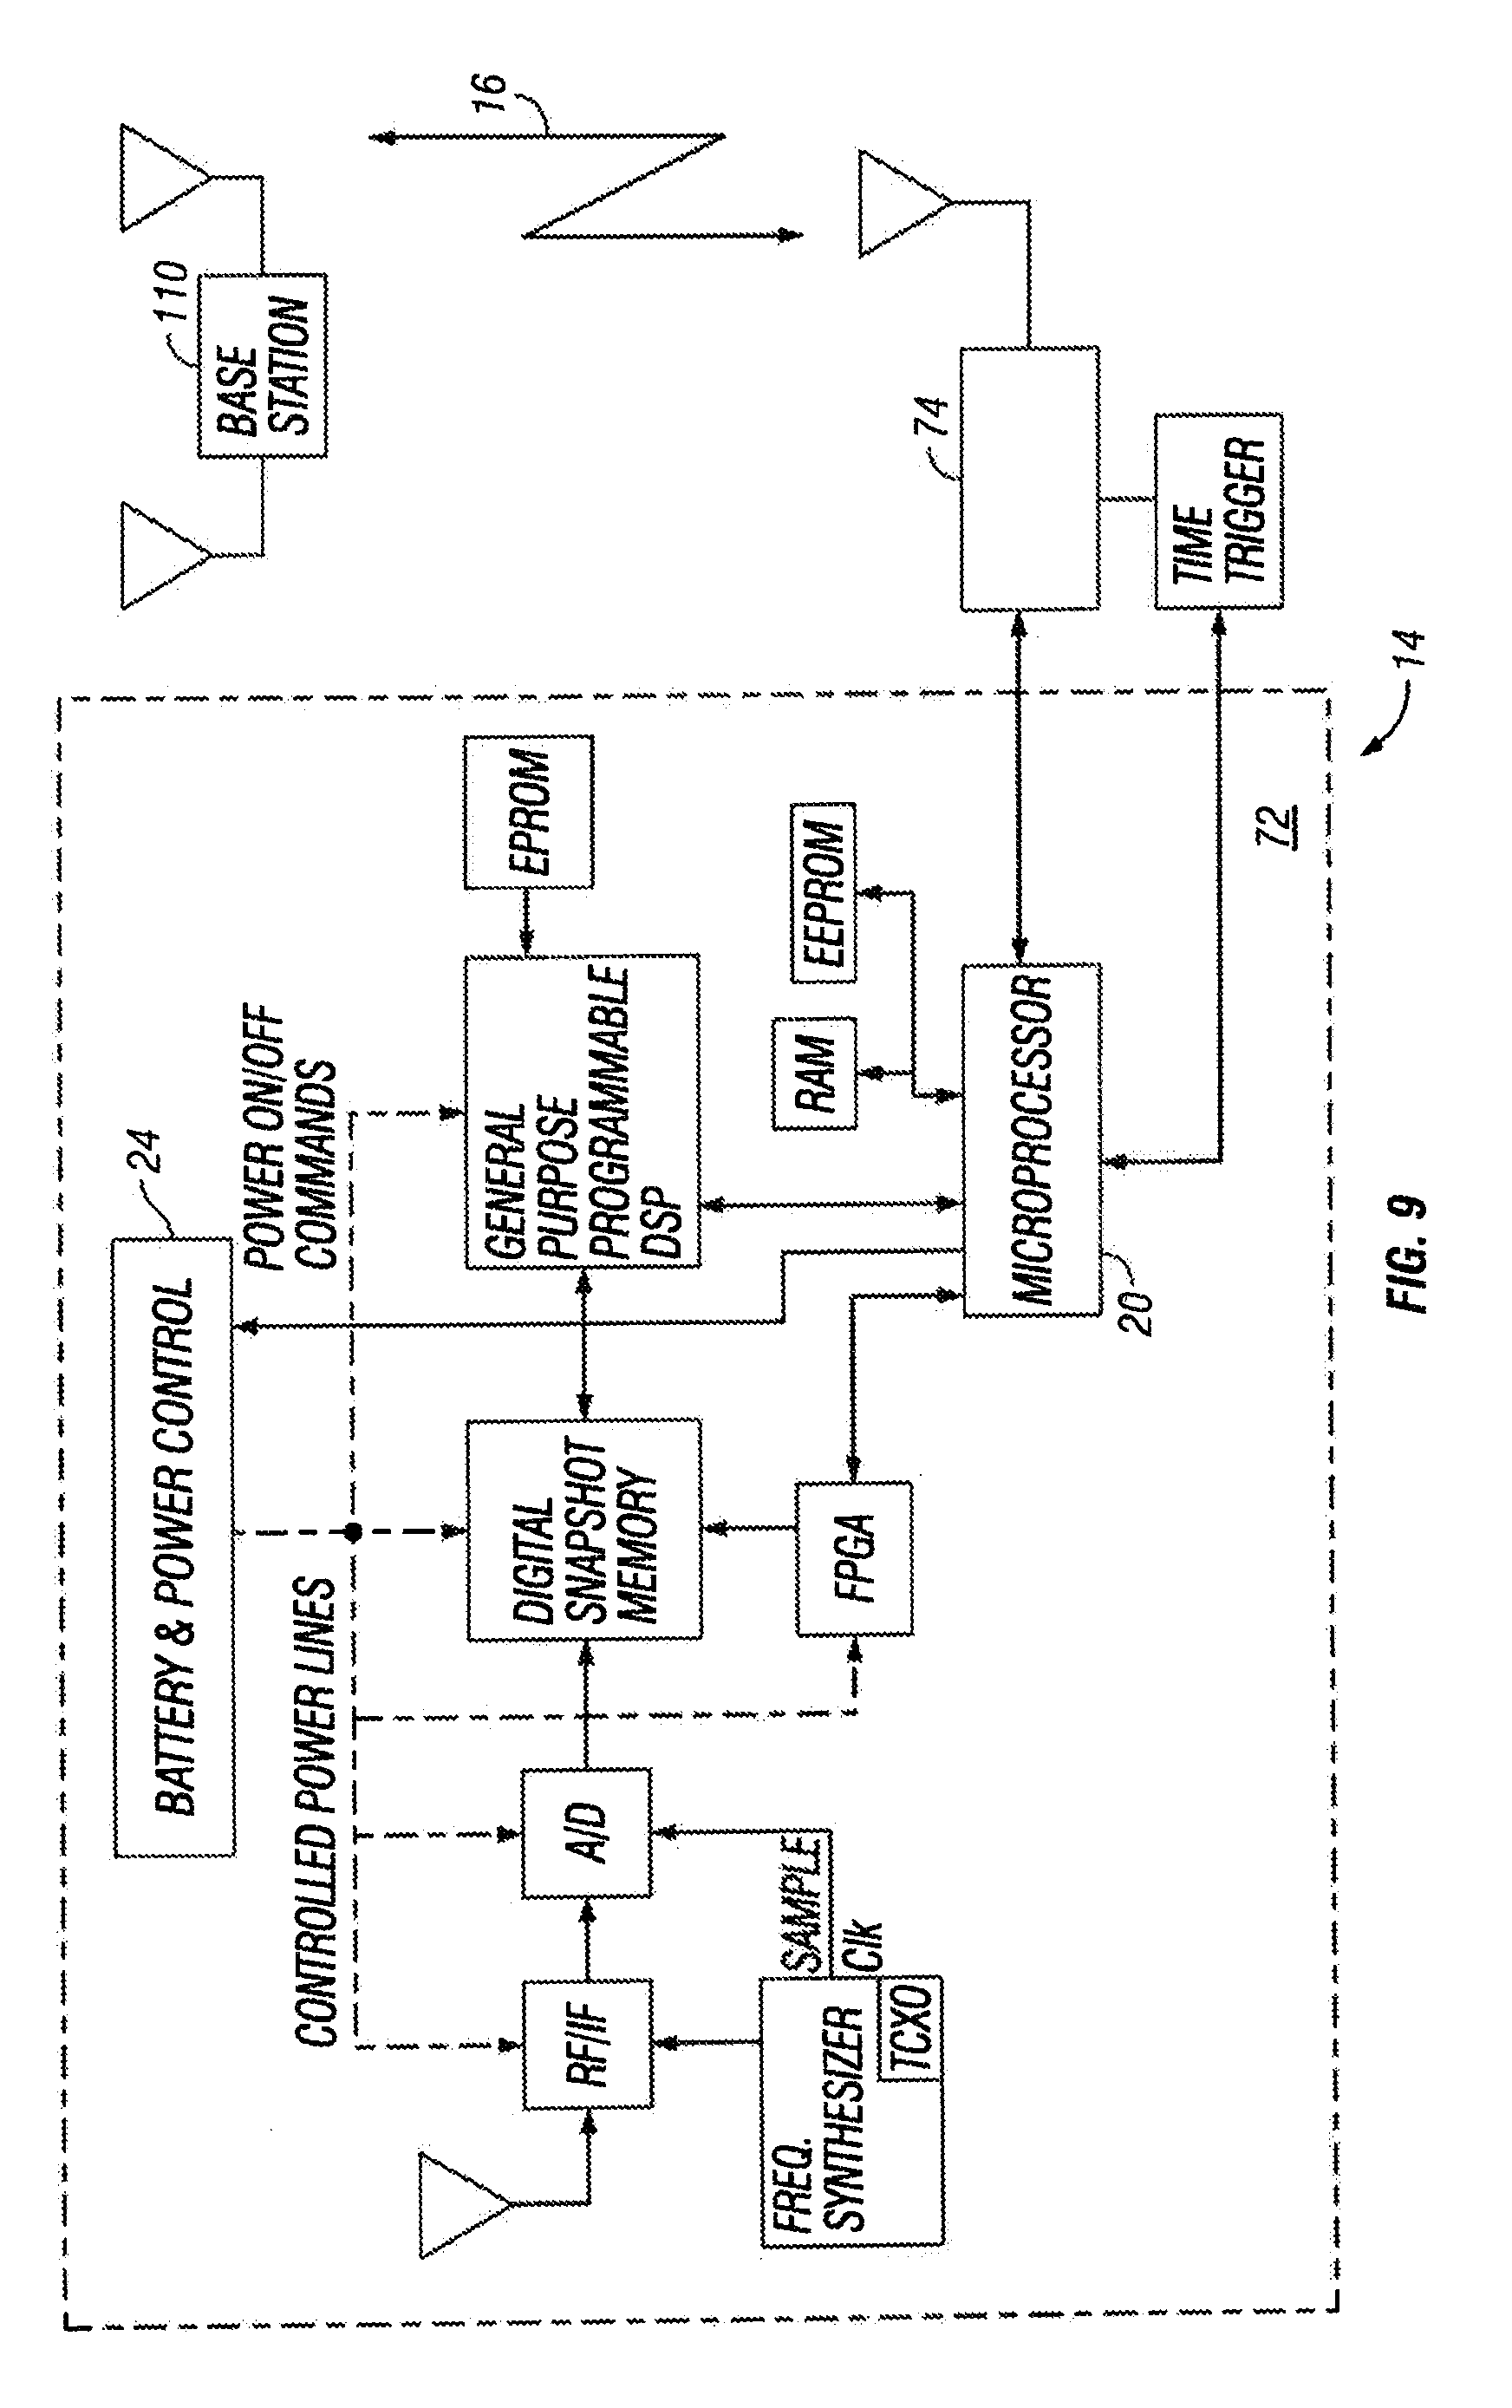 Patent Us 9406220 B2 Passive Band Stop Filter Public Circuit Online Simulator